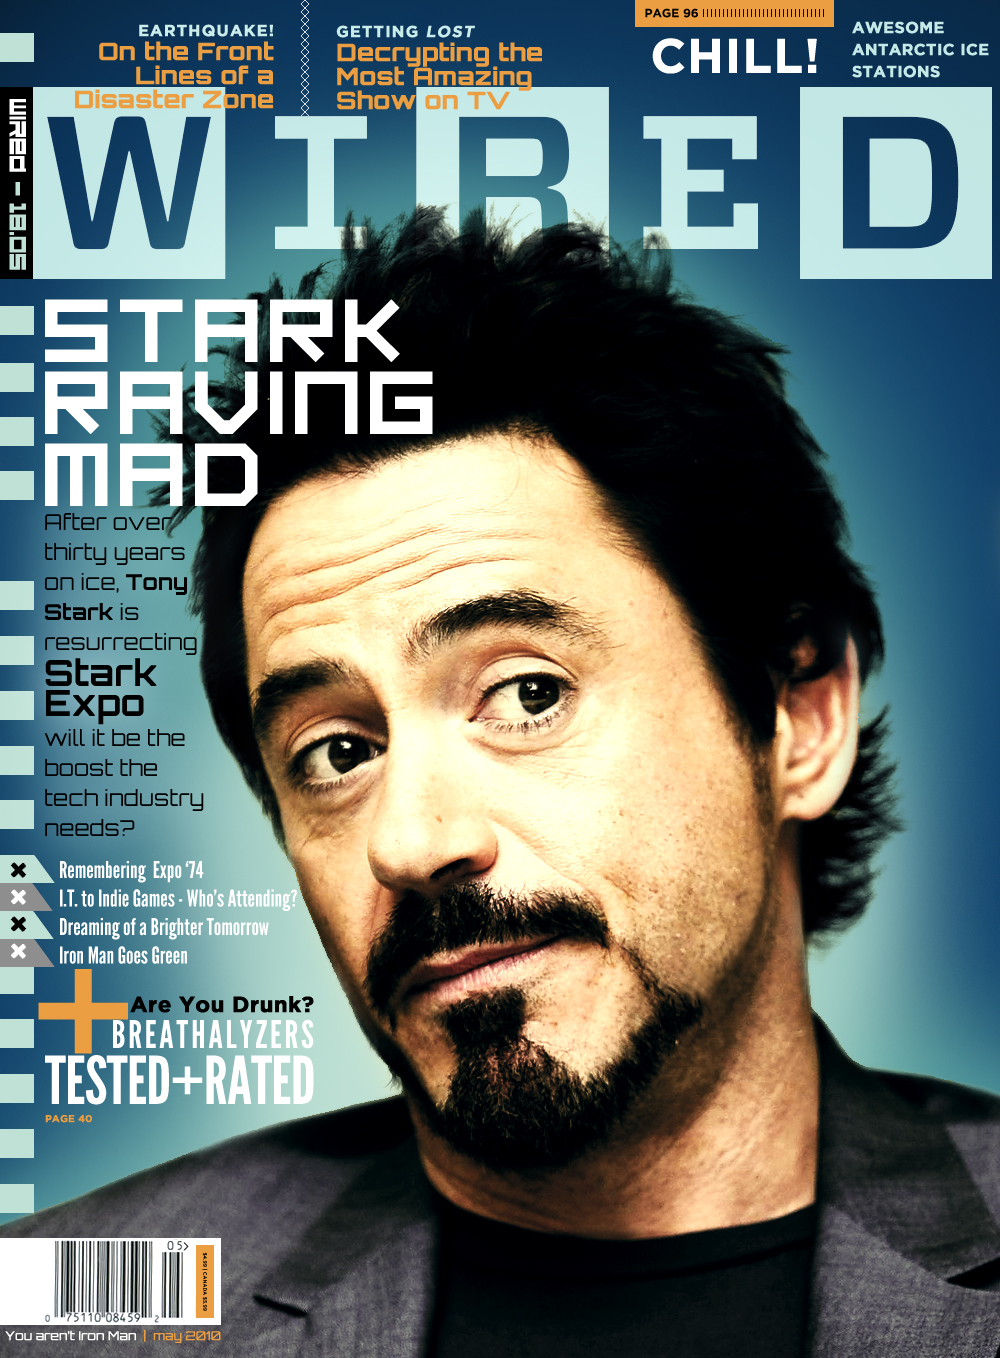 Wired - May 2010 by nottonyharrison on DeviantArt